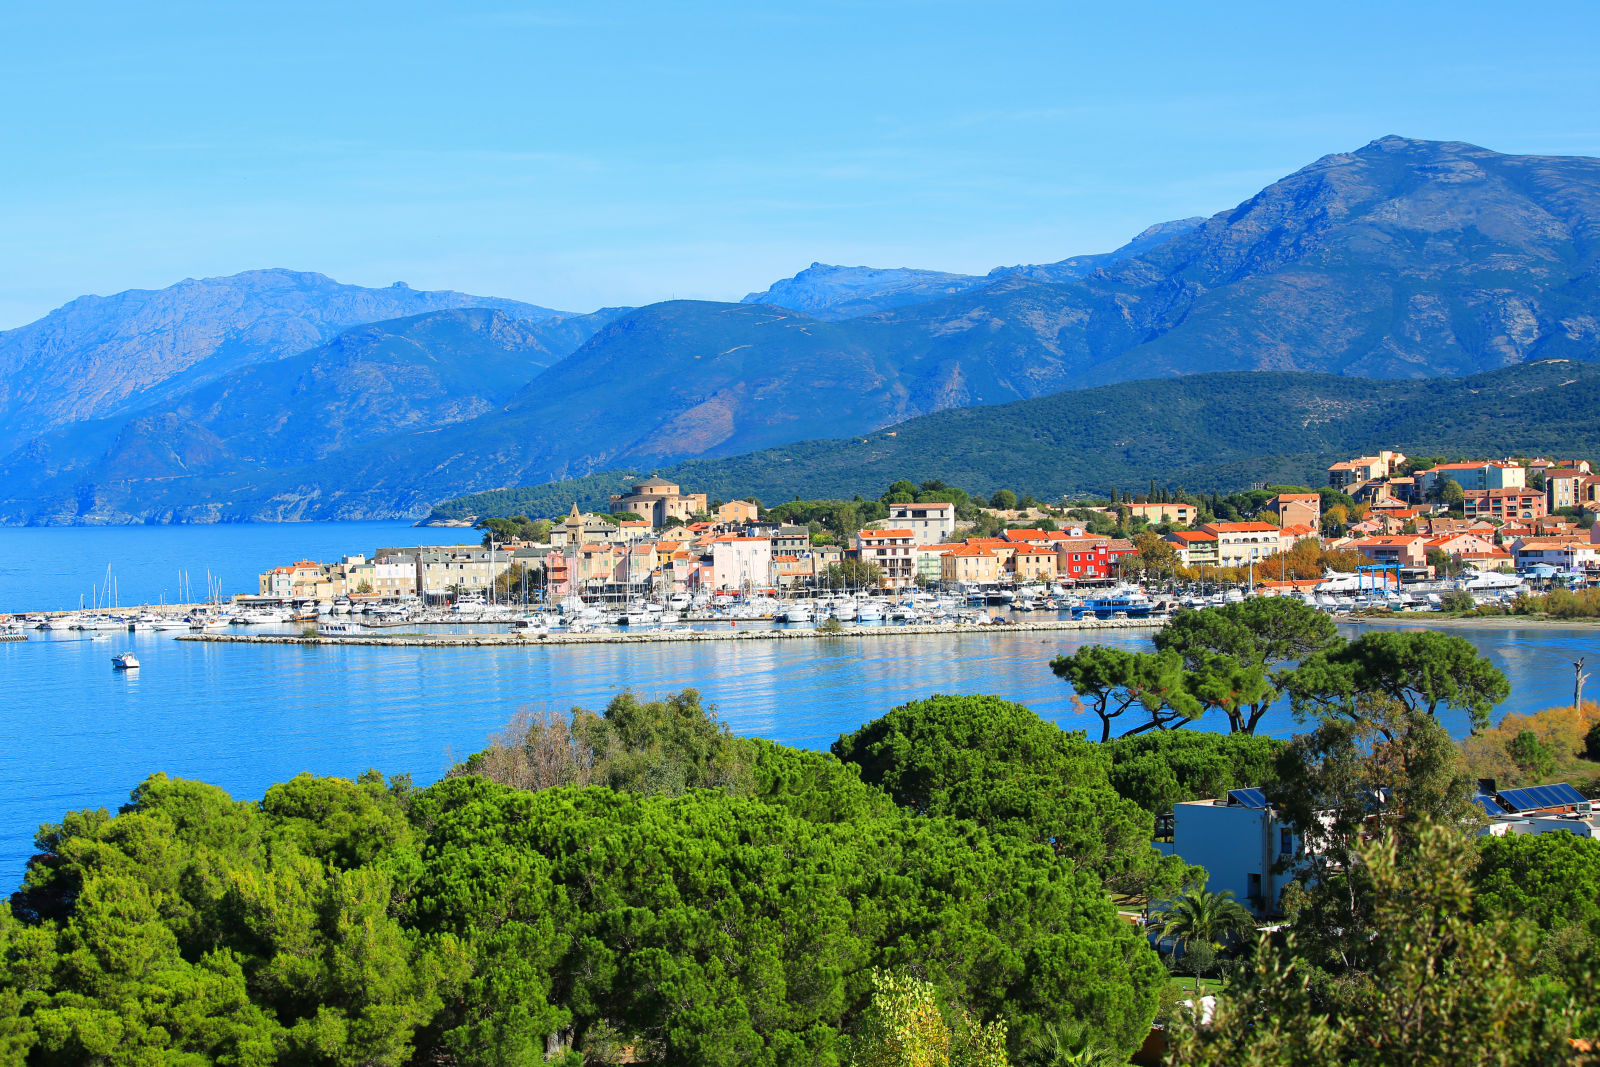 Saint Florent en Corse, France